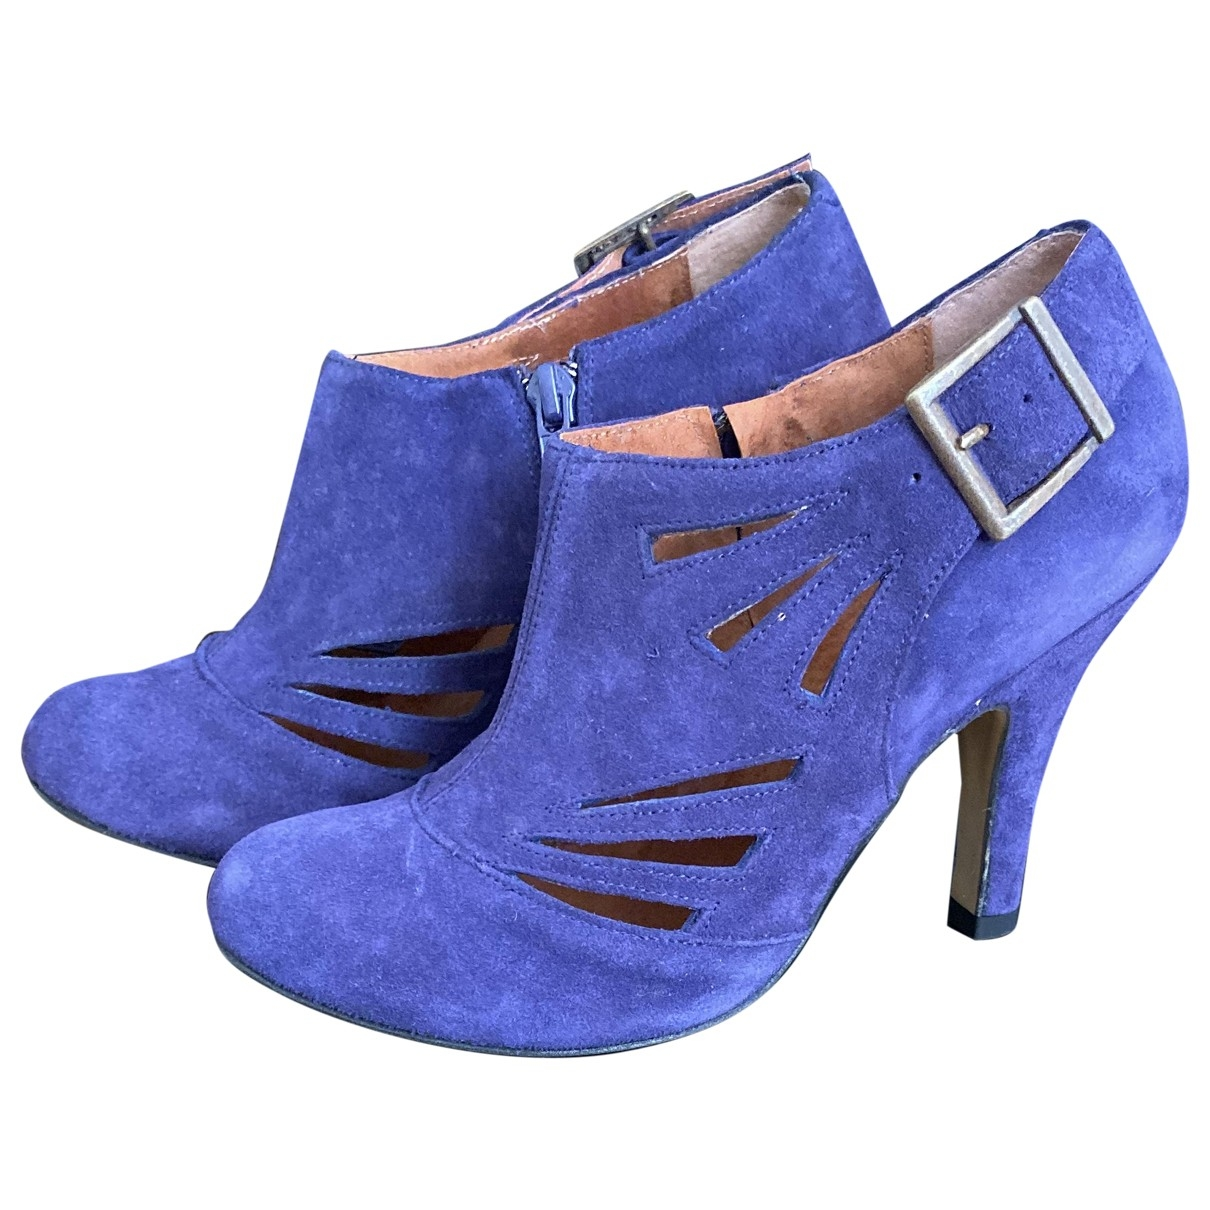 Steve Madden \N Purple Suede Ankle boots for Women 7 US